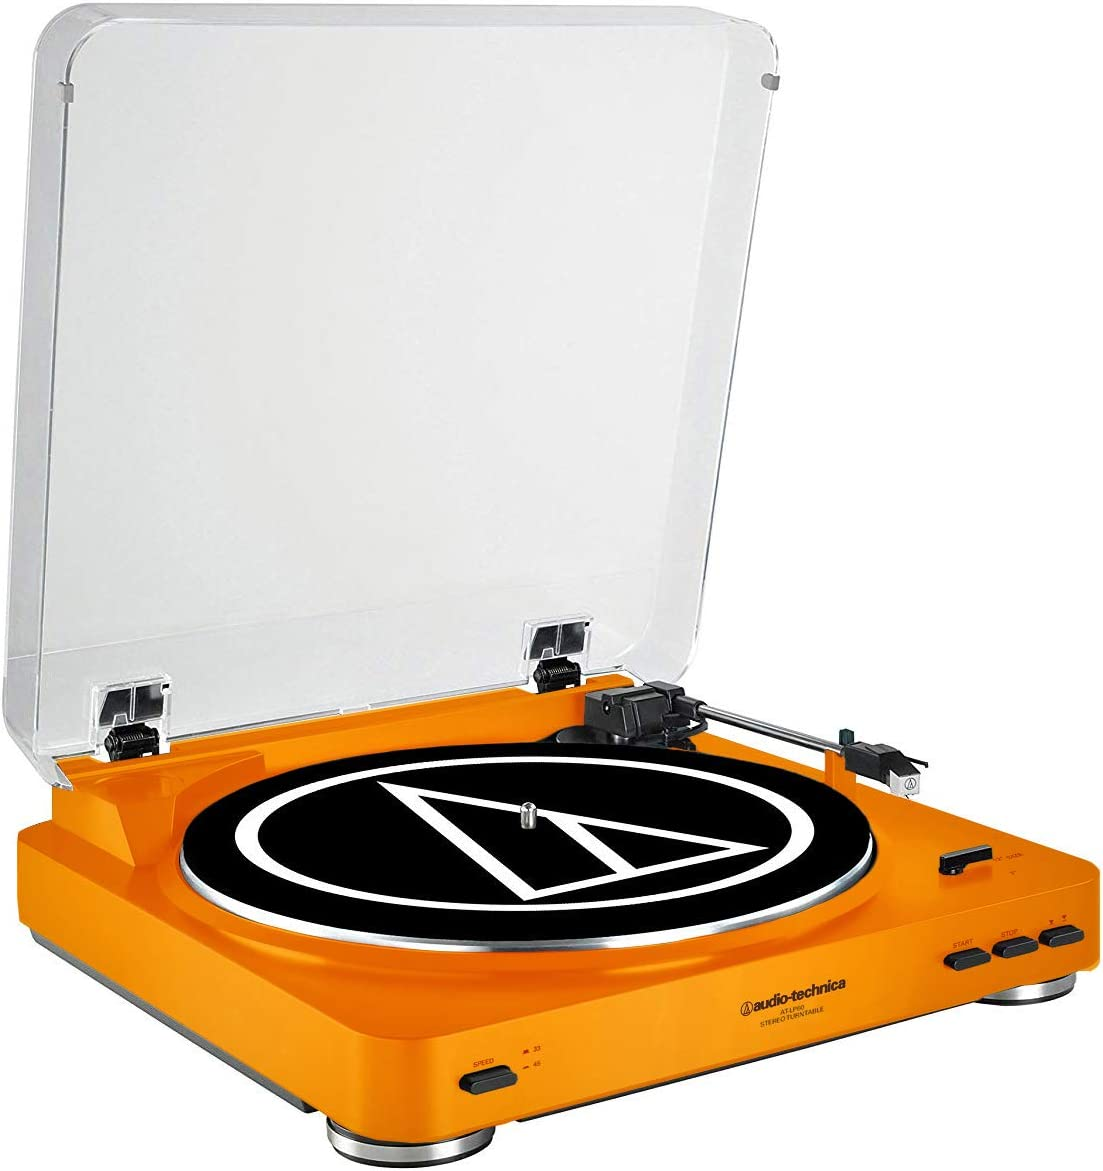 Audio-Technica AT-LP60 Fully Automatic Belt-Drive Stereo Turntable, Orange